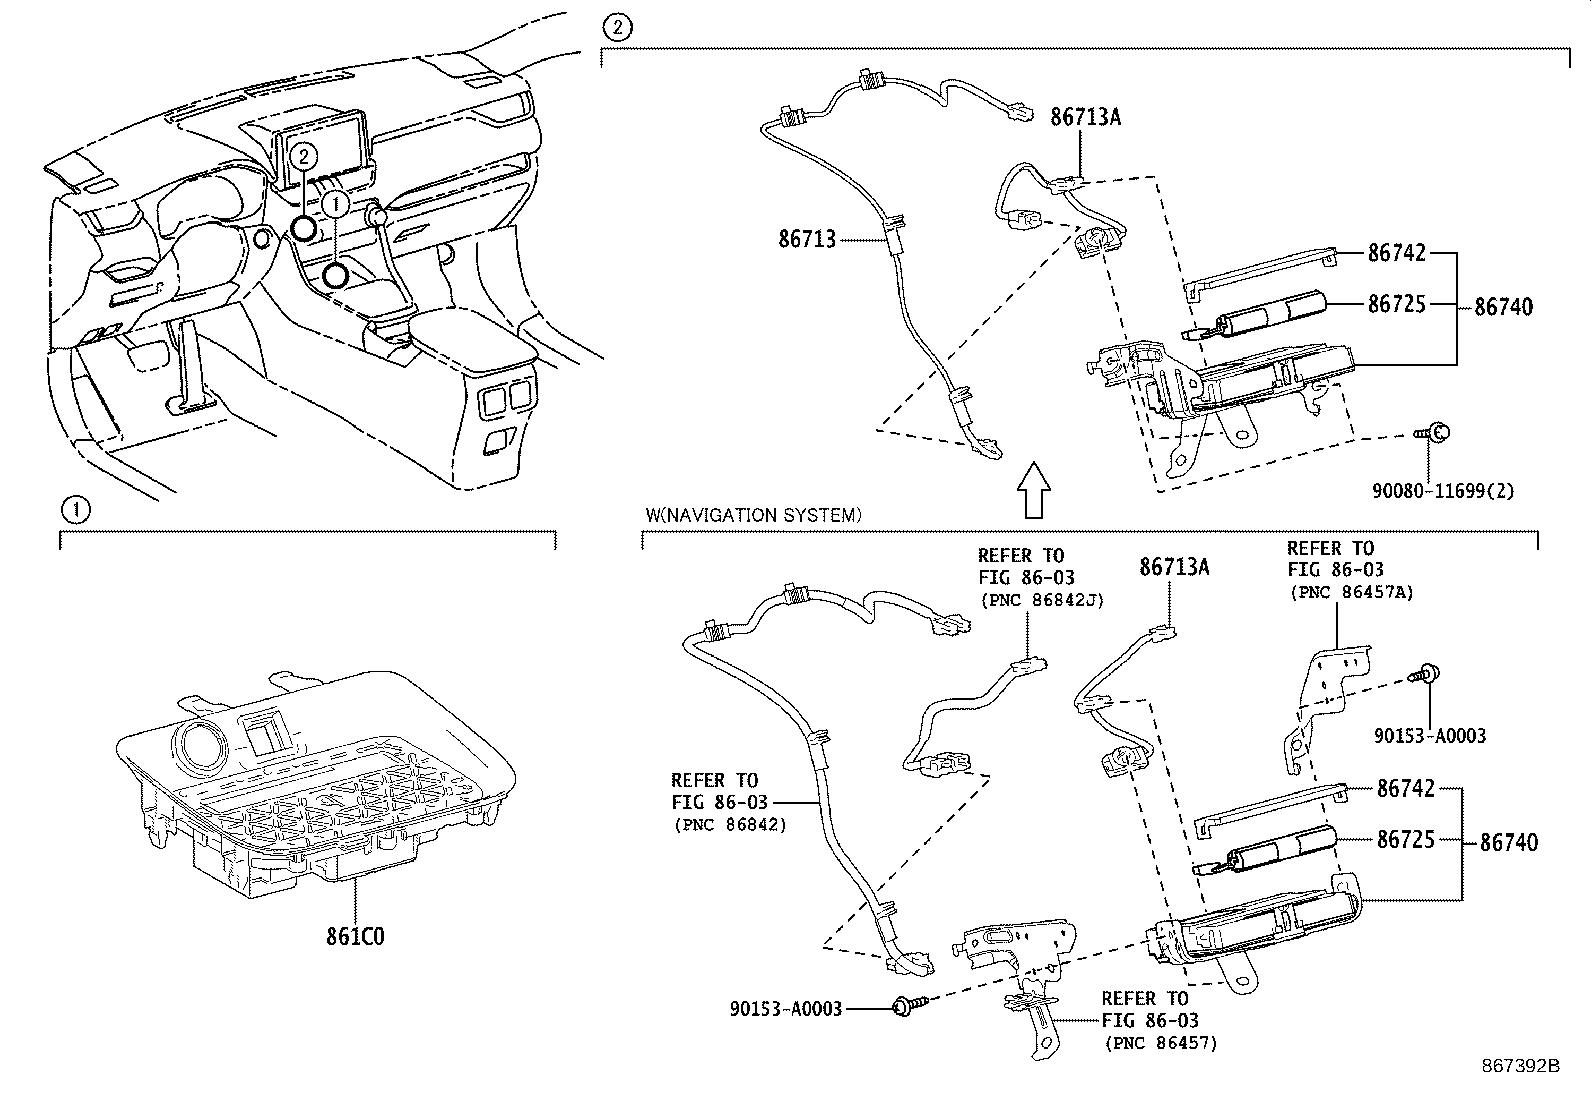 Toyota RAV4 Cradle assembly, mobile wireless charger